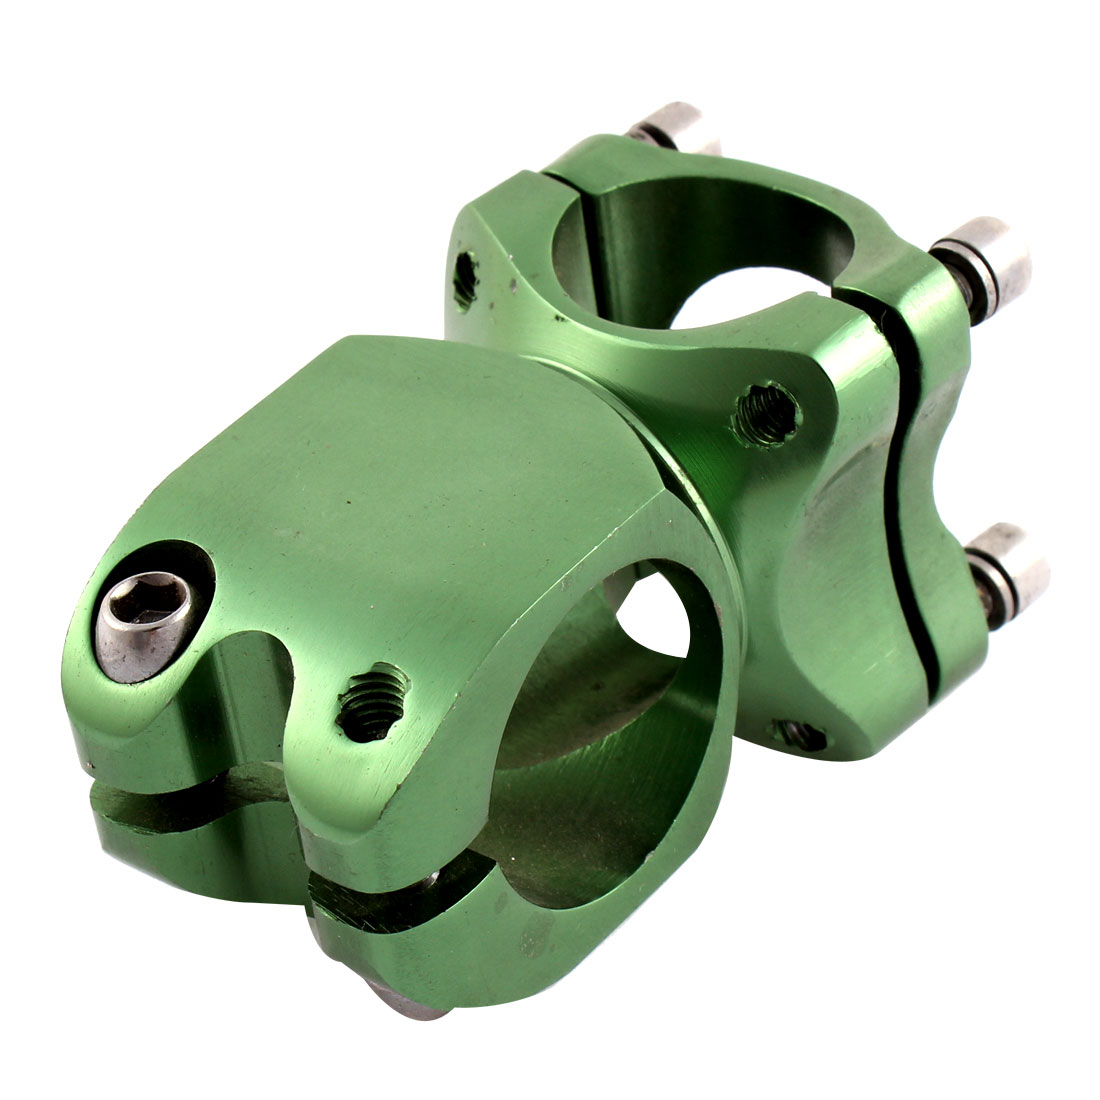 Green Cycling Mountain Bike Bicycle Aluminum Alloy Adjustable Handlebar Stem 25.4mm